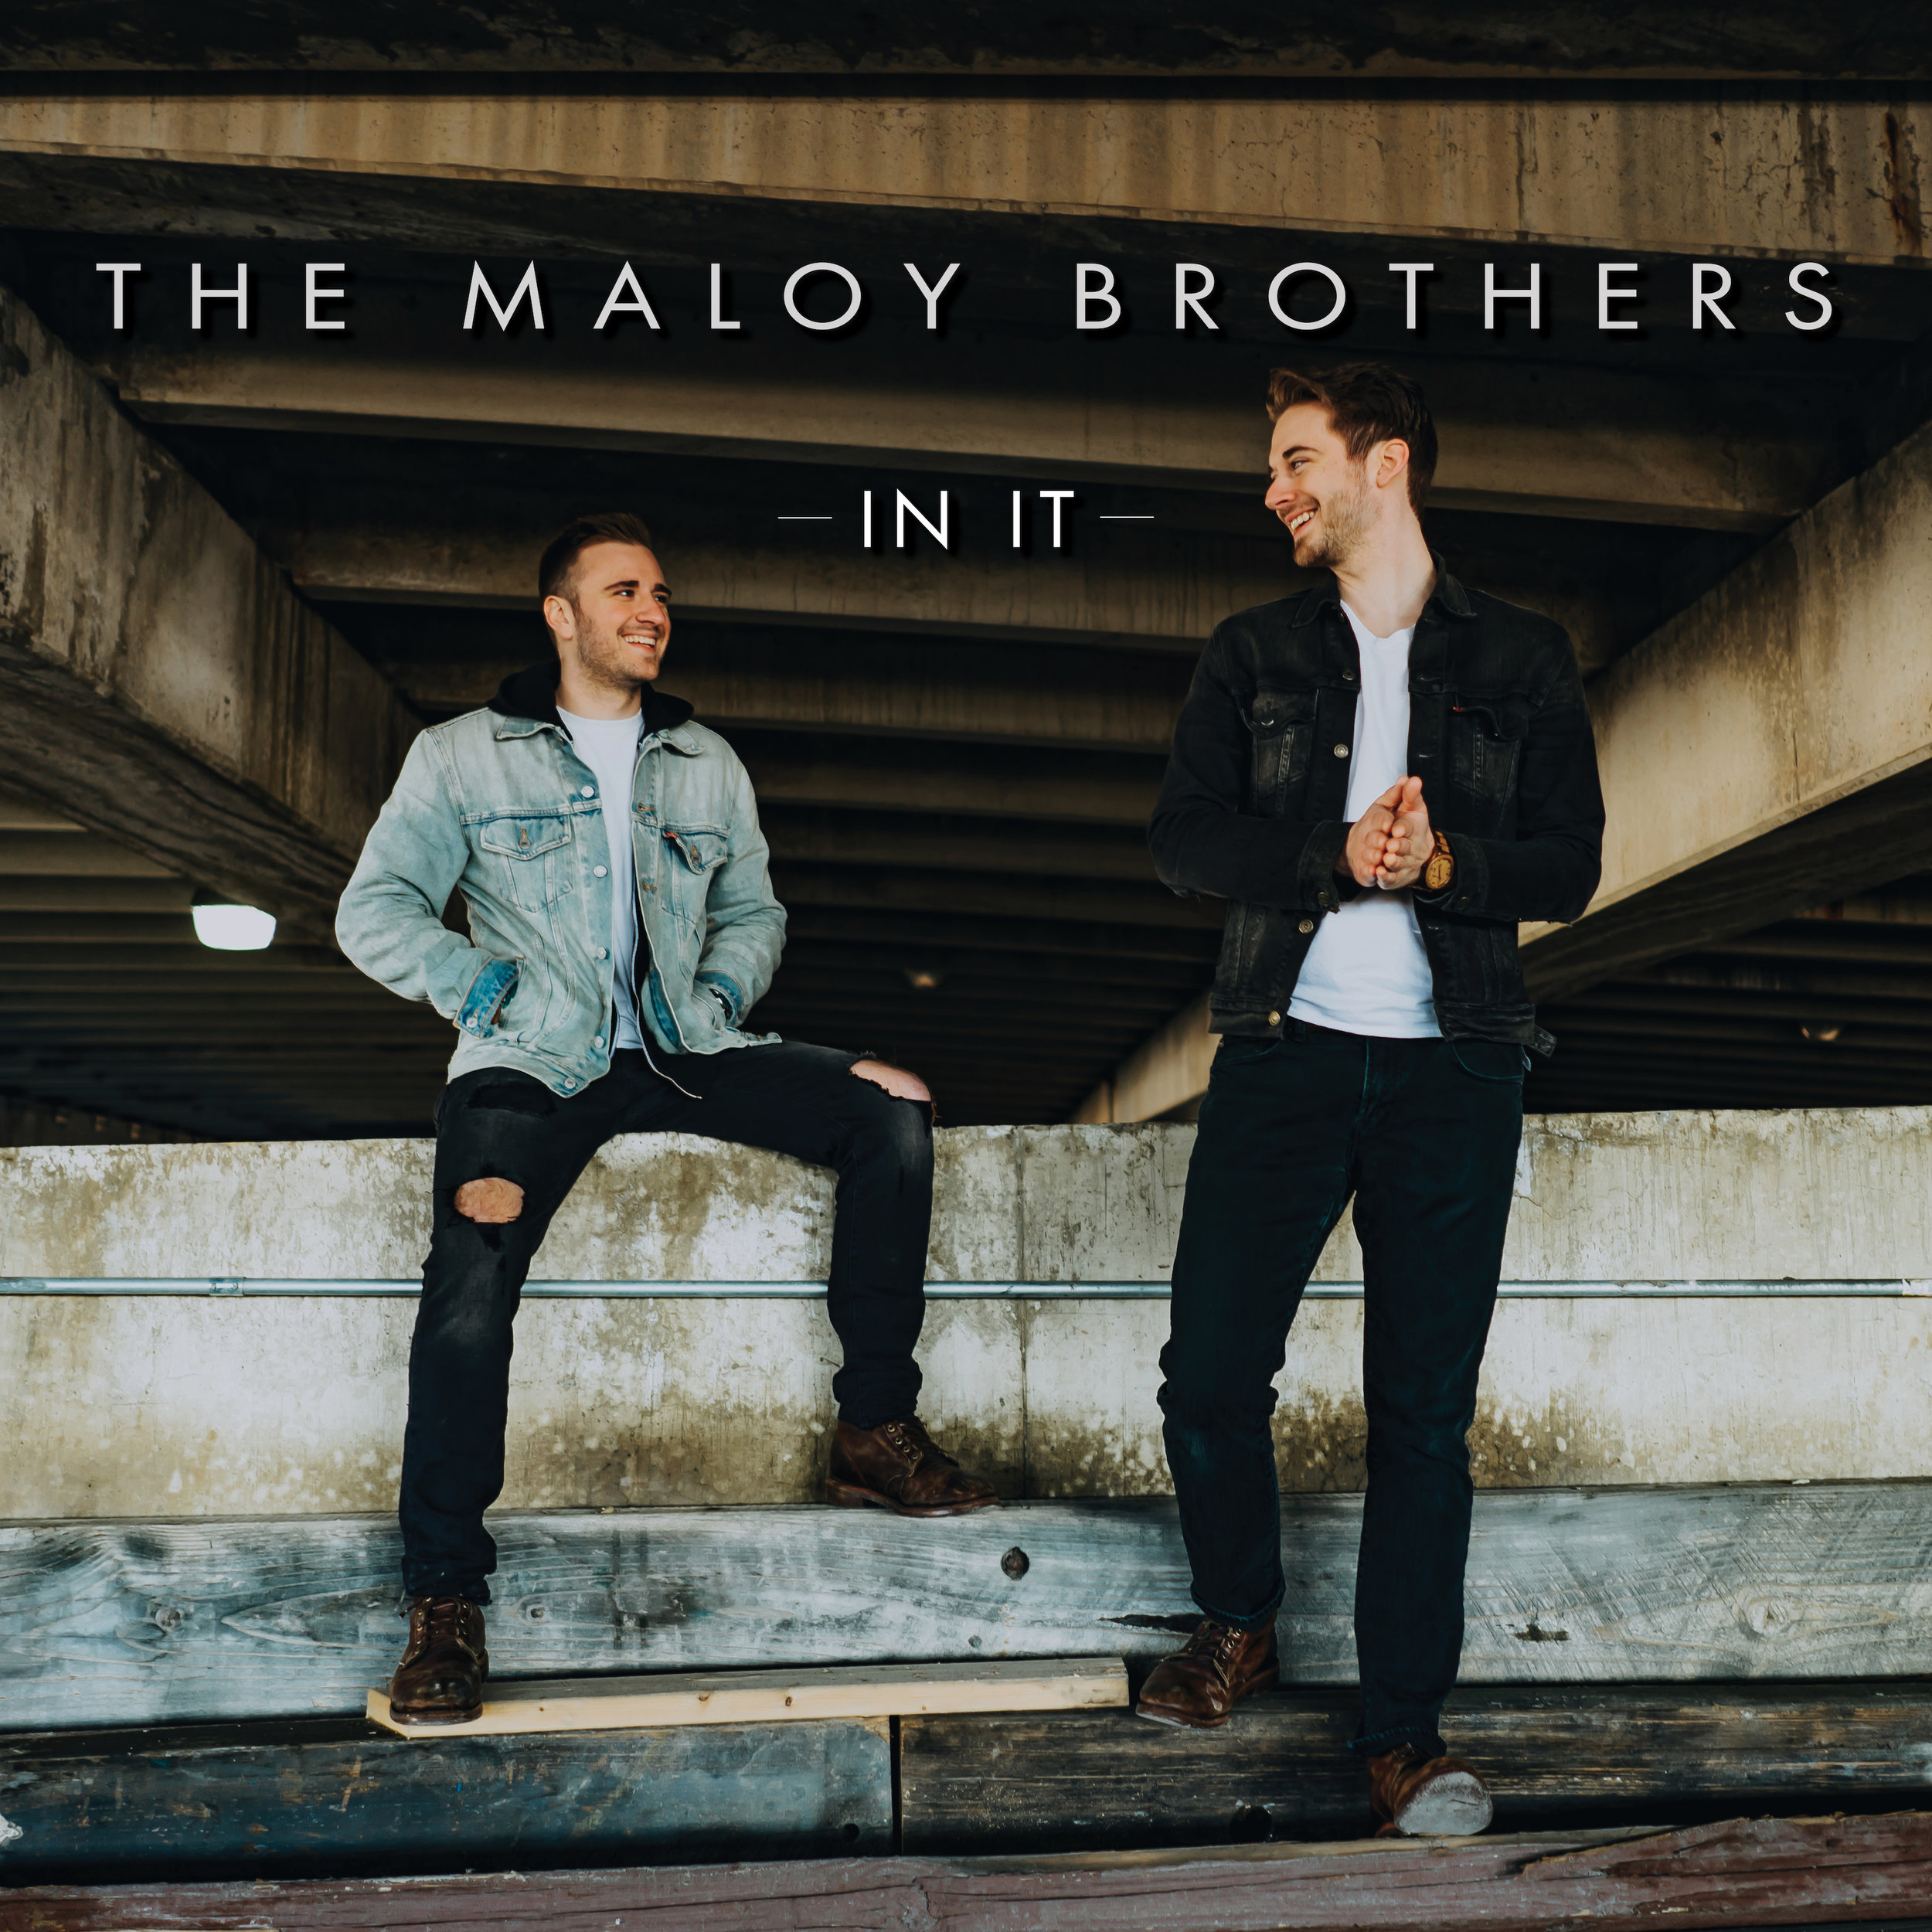 "Cover art for The Maloy Brothers upcoming single, ""In It"". Photo by Kiki Vassilakis; design by Sarah Heikkinen."